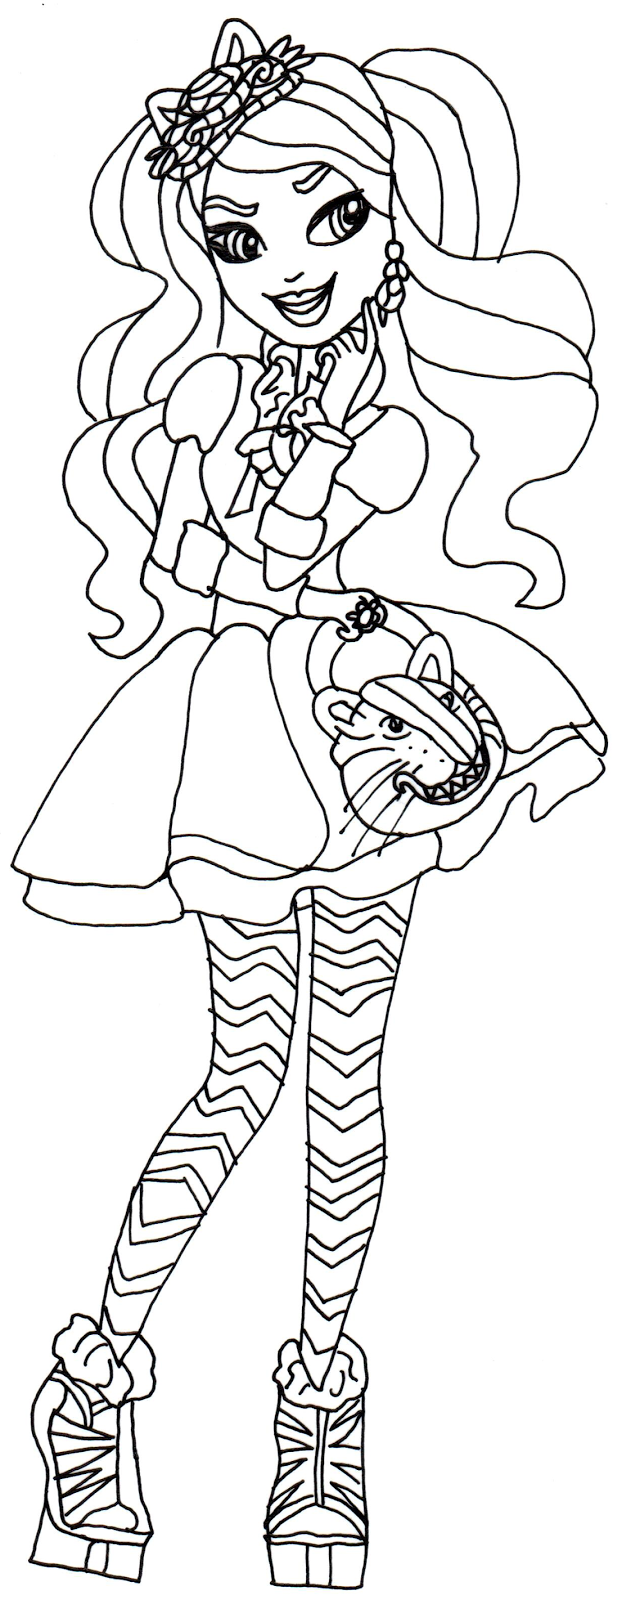 Coloring Pages Ever After High : Ever after high coloring pages home